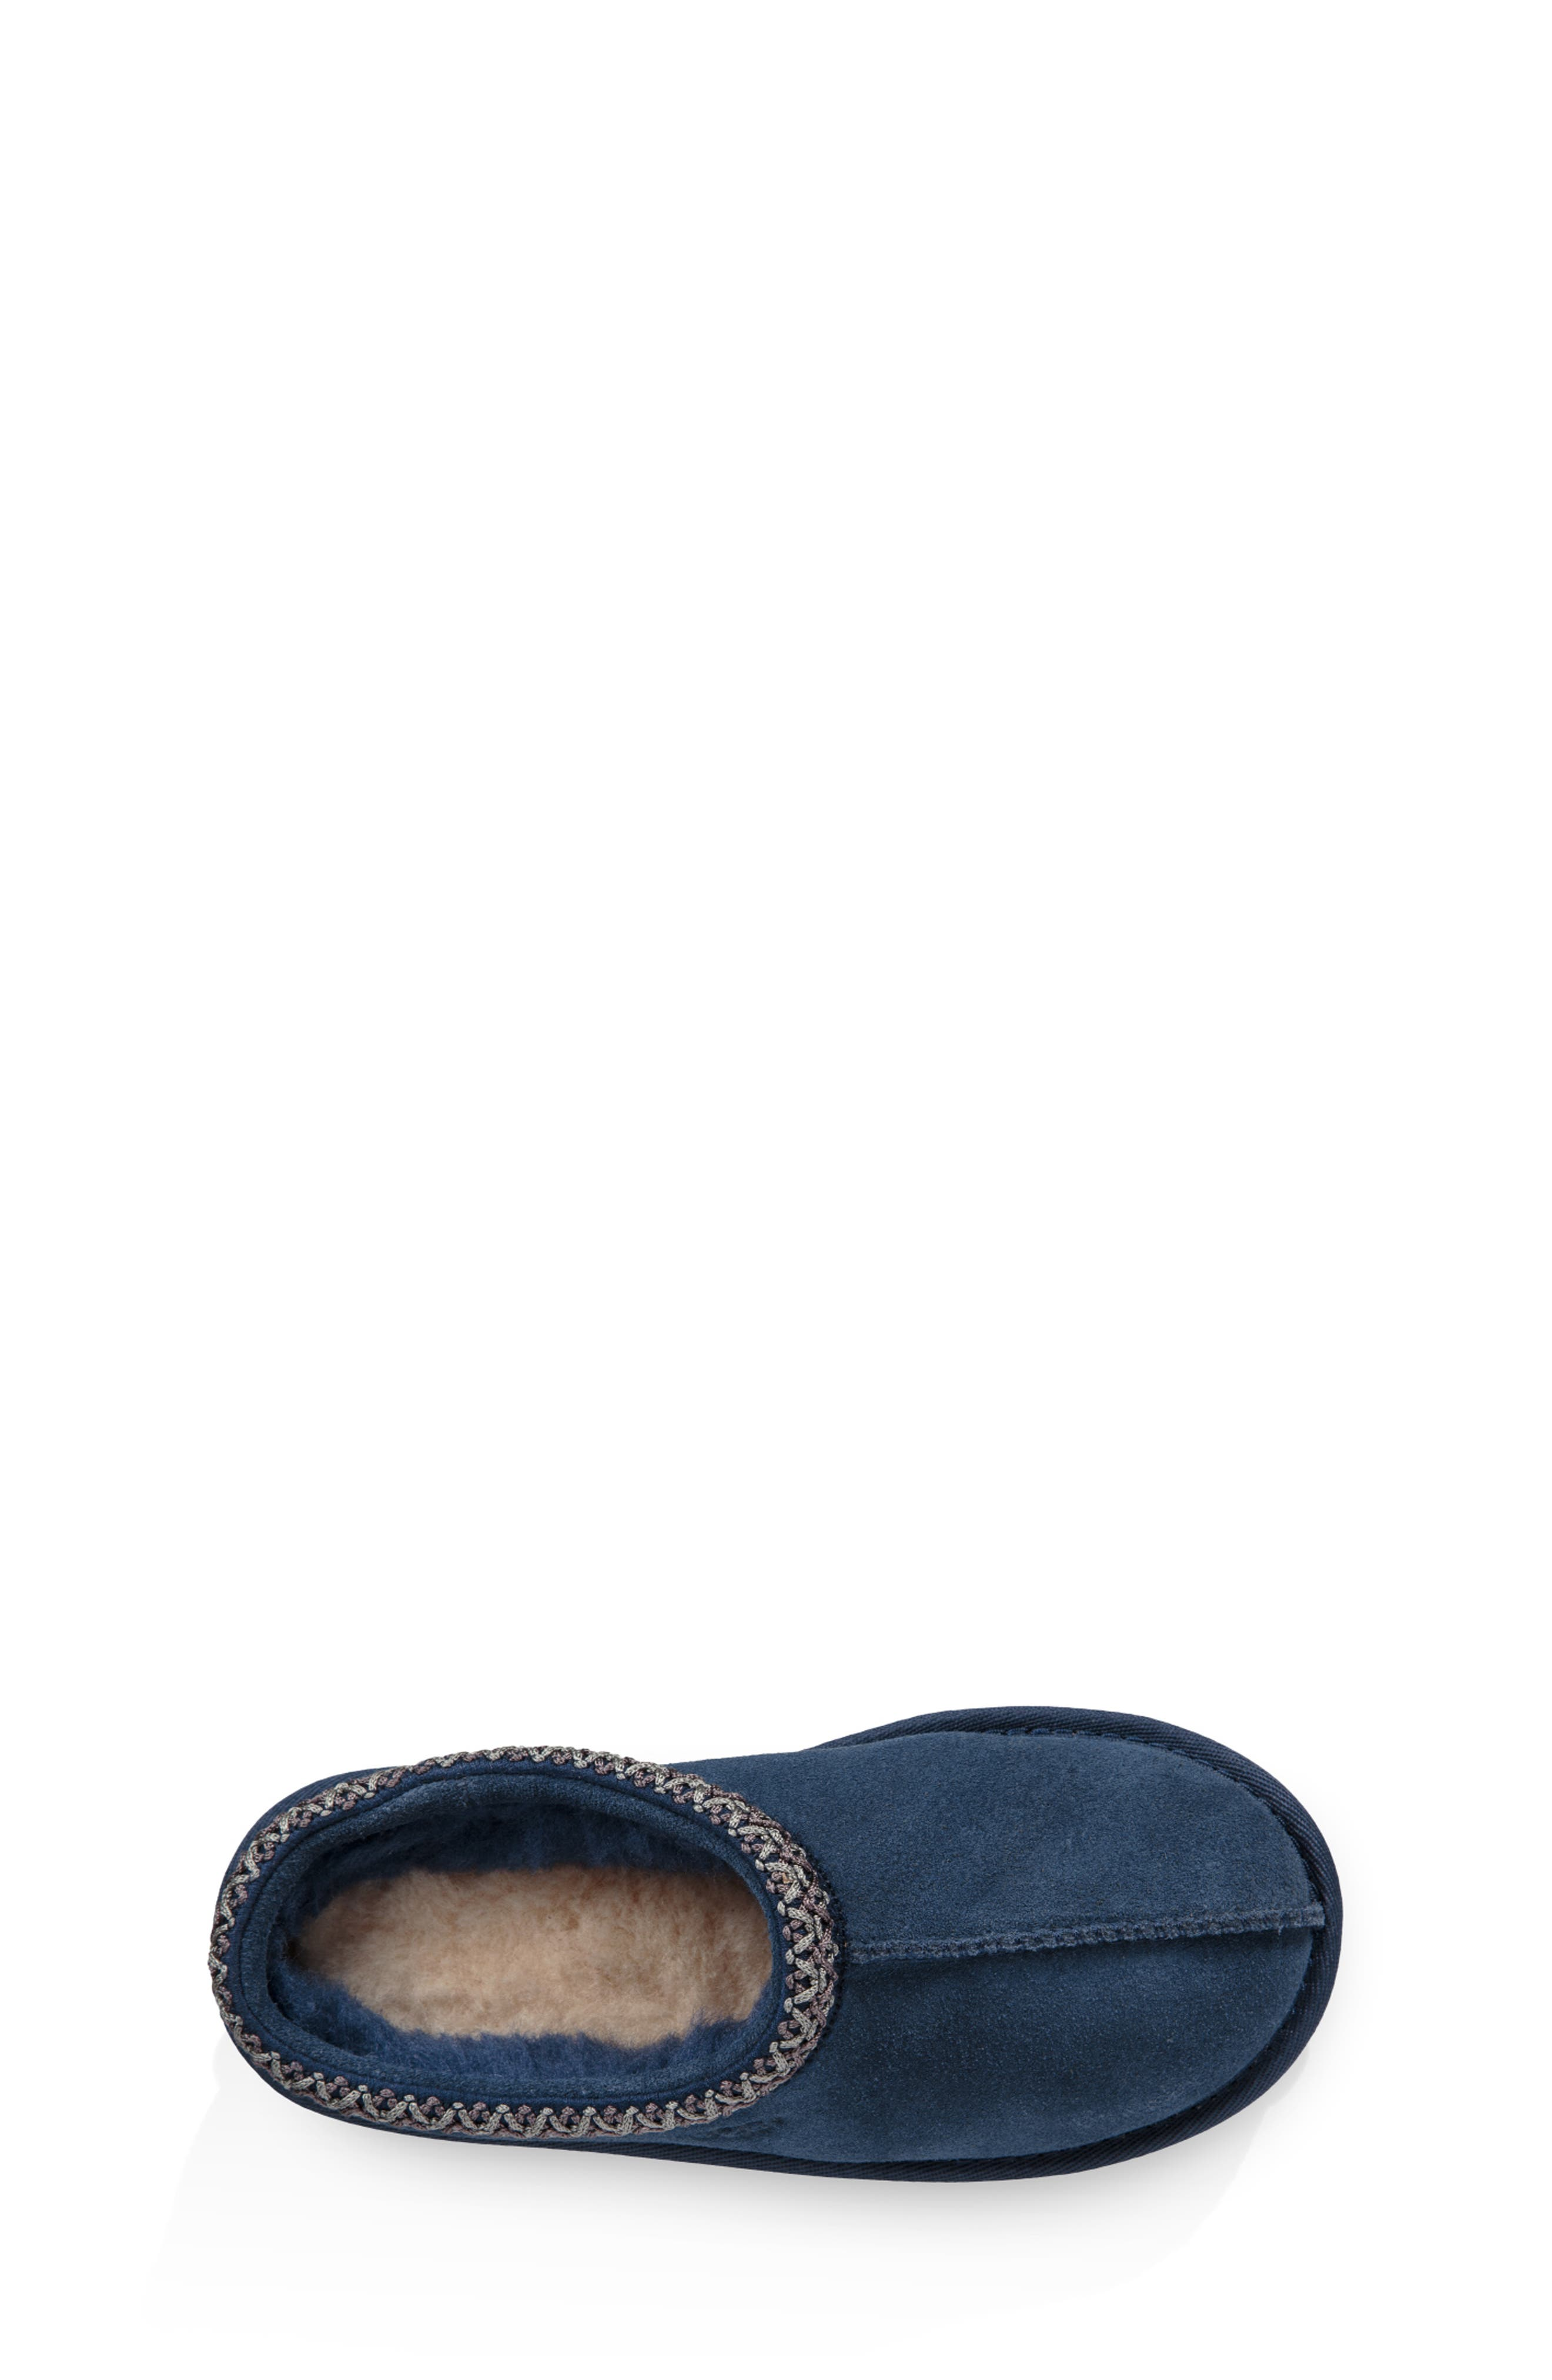 UGG<SUP>®</SUP>, K-Tasman II Embroidered Slipper, Alternate thumbnail 4, color, NEW NAVY